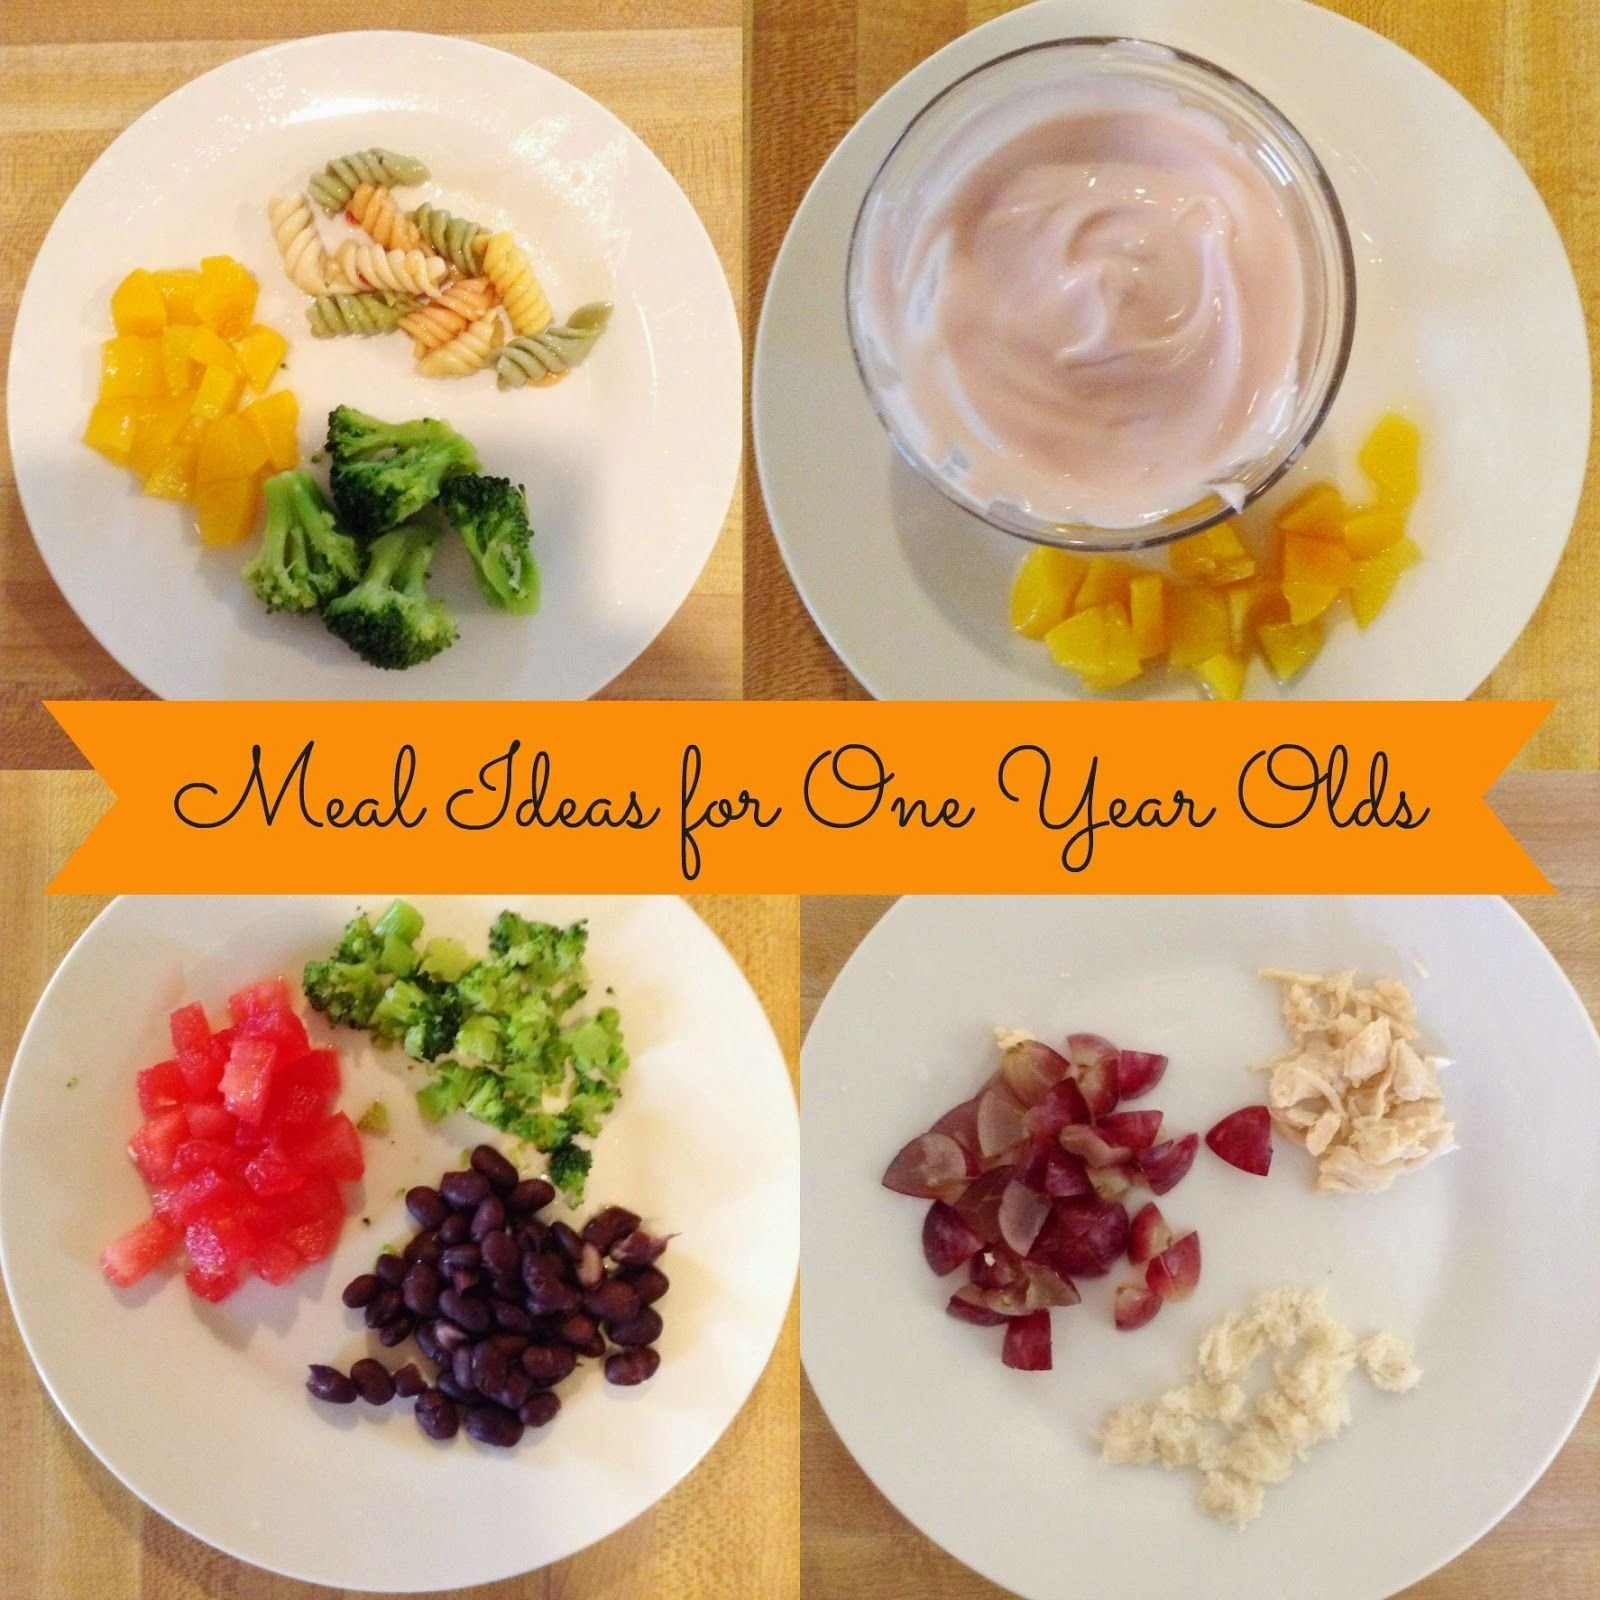 10 Elegant One Year Old Meal Ideas little madi grace meals ideas for one year old baby toddler food 6 2020